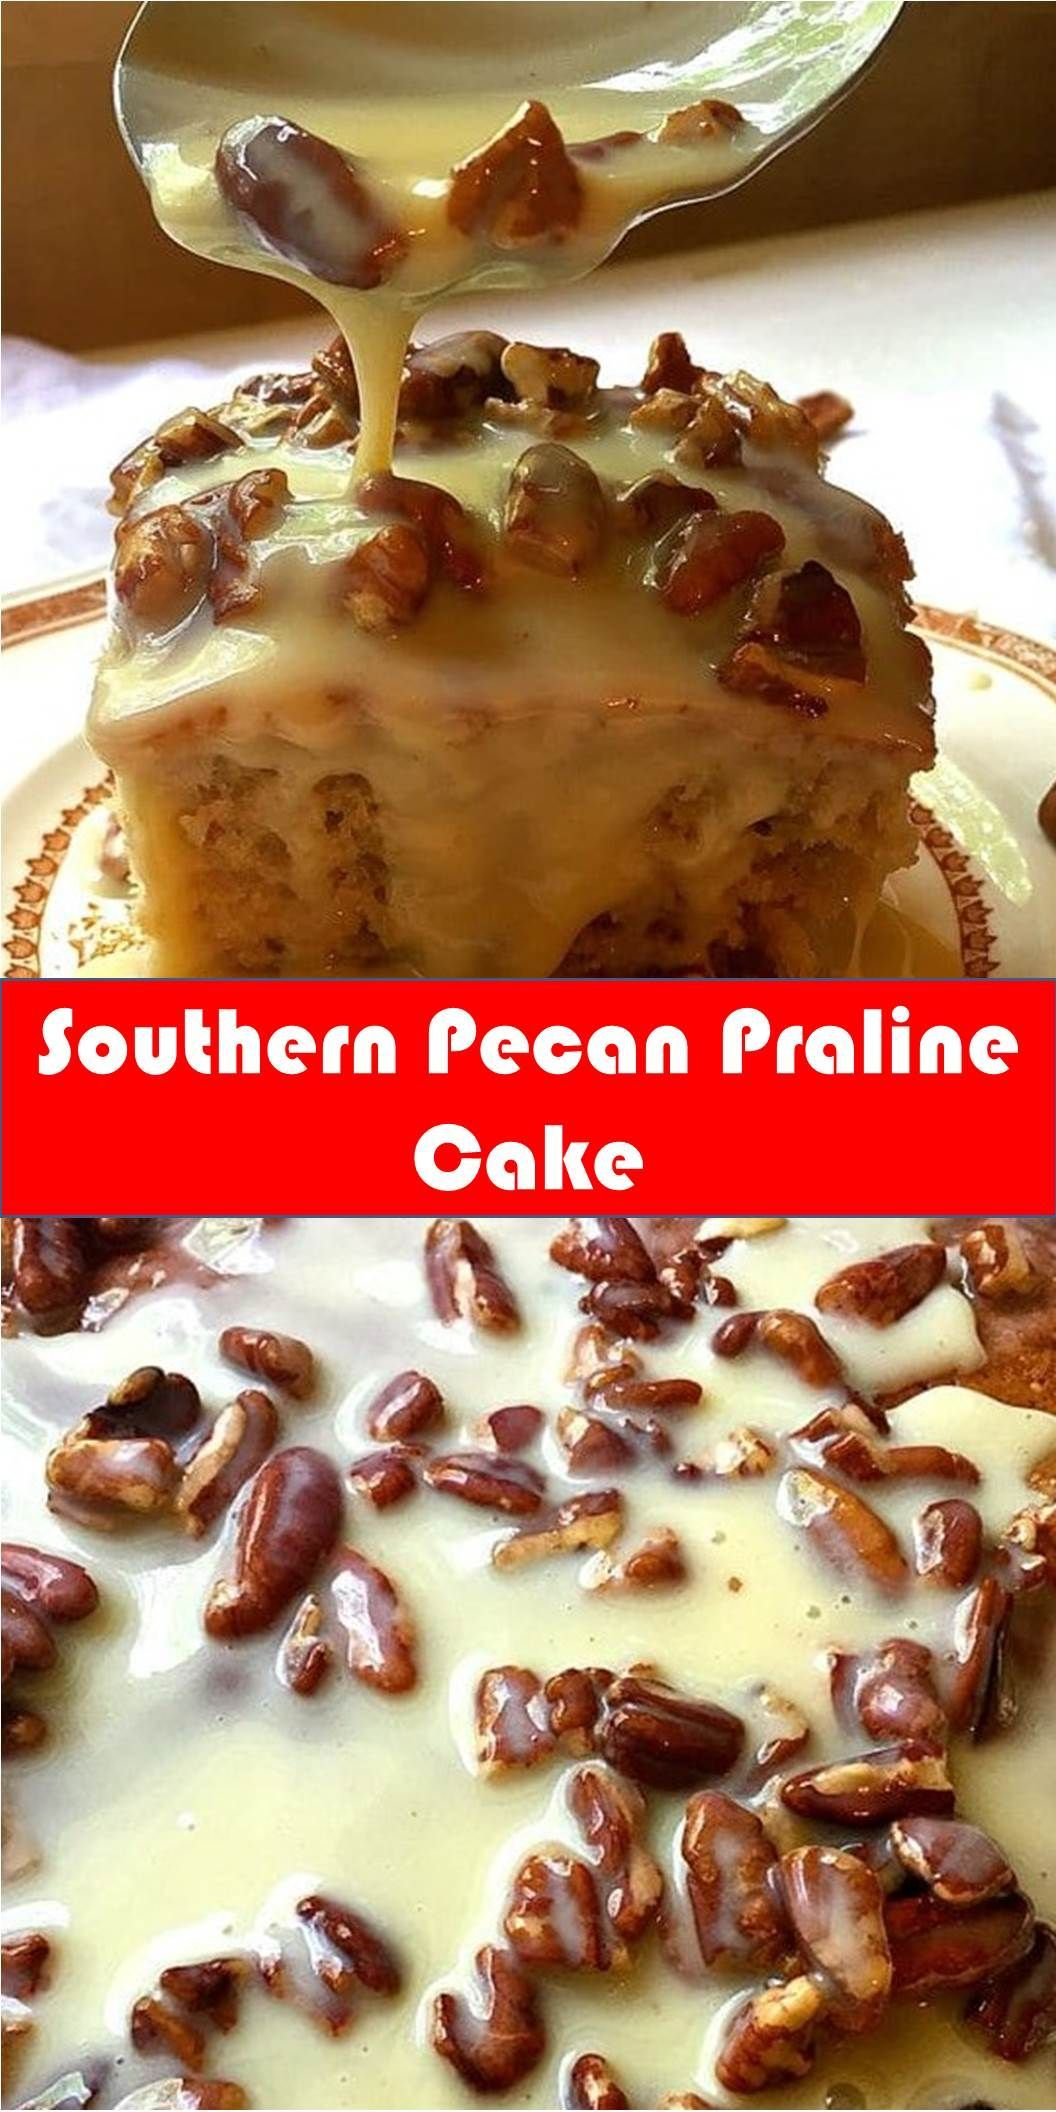 #Delicious #Southern #Pecan #Praline #Cake Your family's favorite food and drink ! Southern Pecan Praline Cake Southern Pecan Praline Cake is about as southern as you can get and if you like pecans and pralines you will love this easy to make, decadent and delicious cake. #Best #Vegas #Recipe! #BestVegasRecipe! #pralinecake #Delicious #Southern #Pecan #Praline #Cake Your family's favorite food and drink ! Southern Pecan Praline Cake Southern Pecan Praline Cake is about as southern as you can get #pralinecake